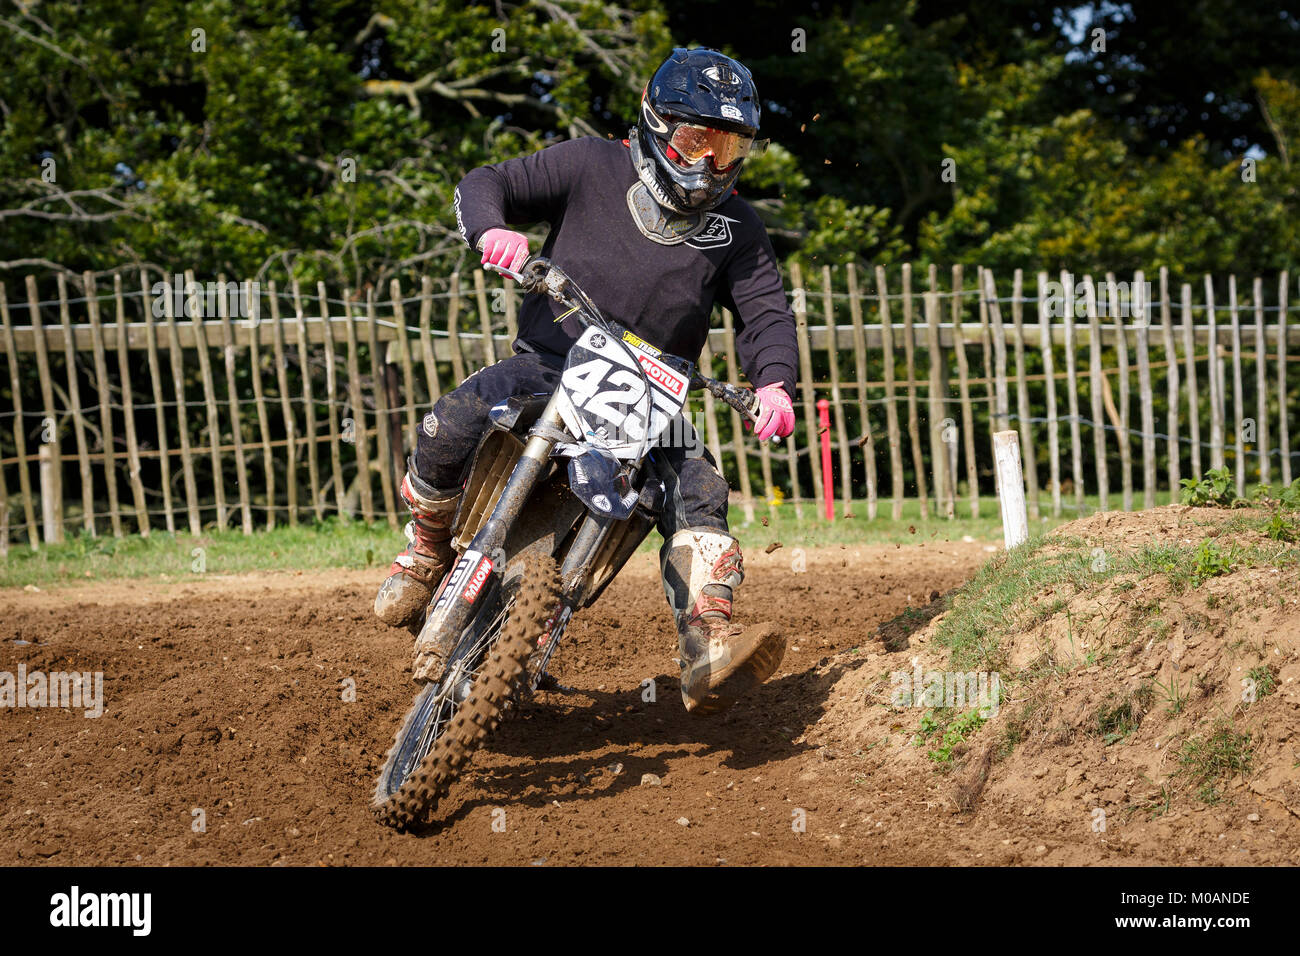 Oliver Clarke on the Yamaha 250 at the NGR & ACU Eastern EVO Championships, Cadders Hill, Lyng, Norfolk, UK. - Stock Image